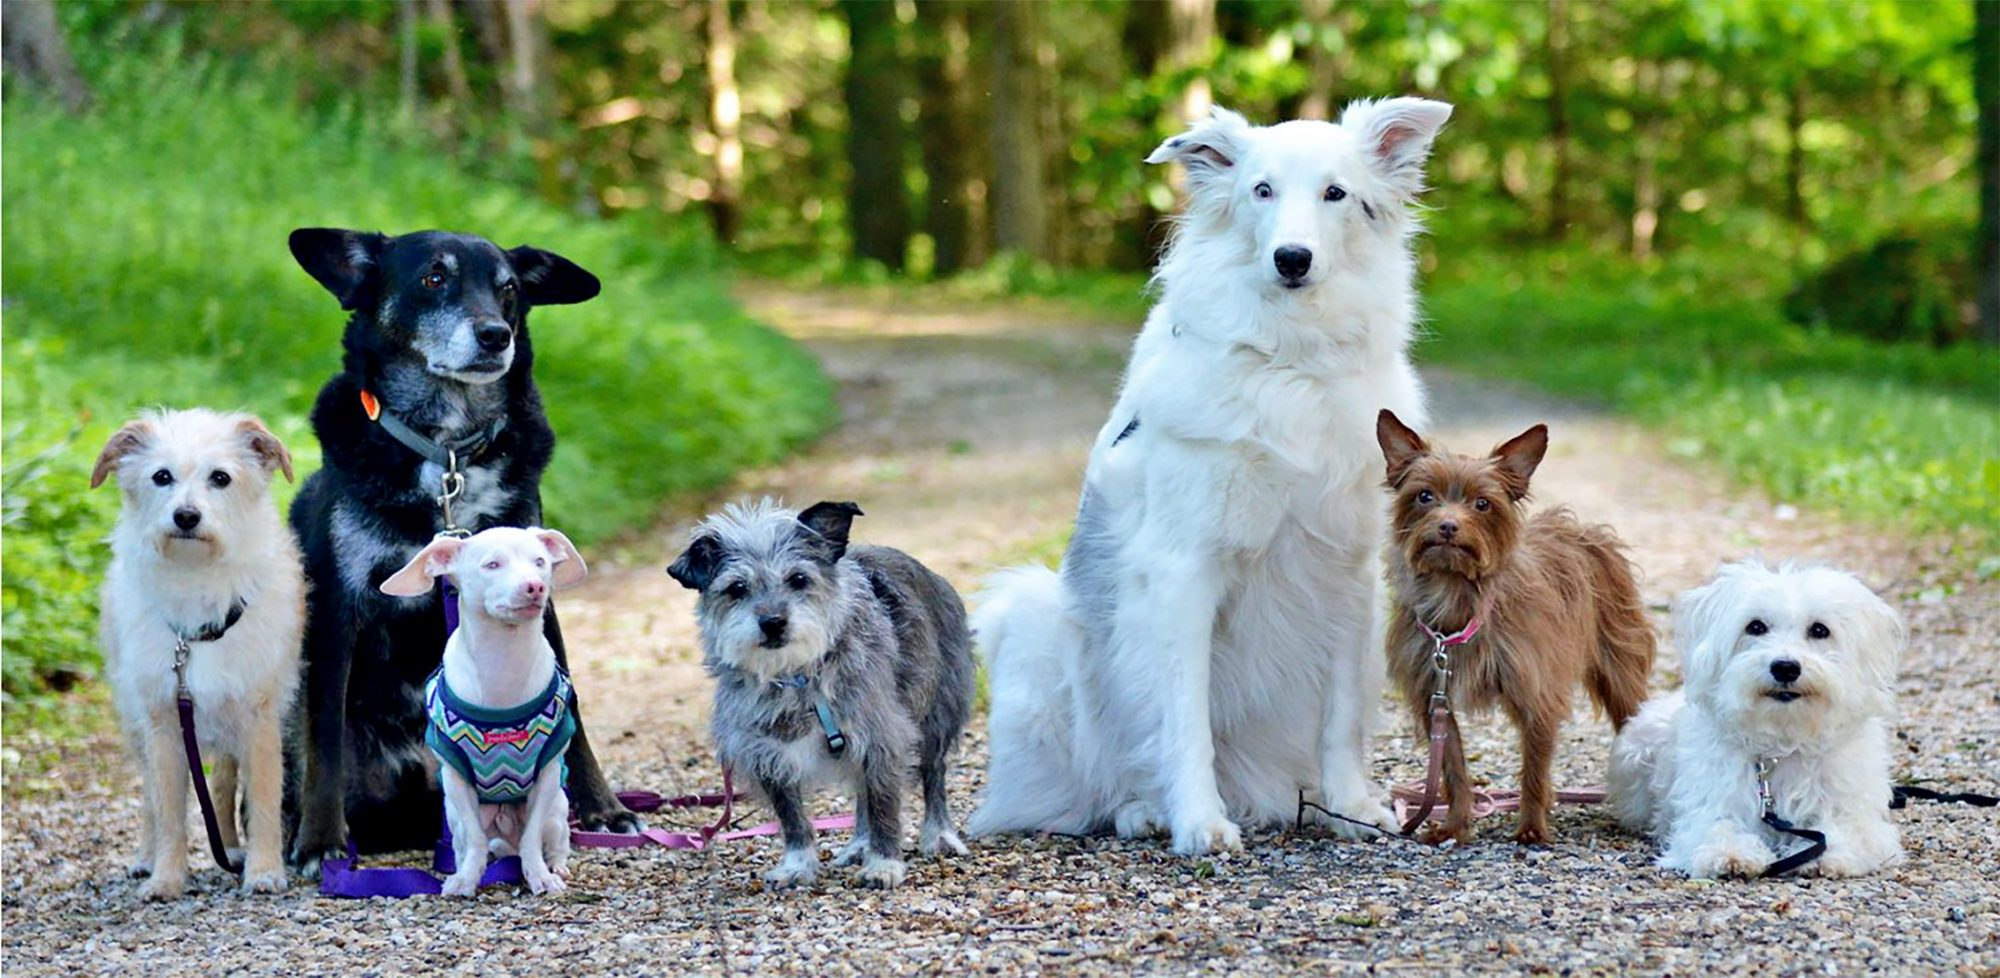 Piglet the Dog with his 6-pack of dog friends